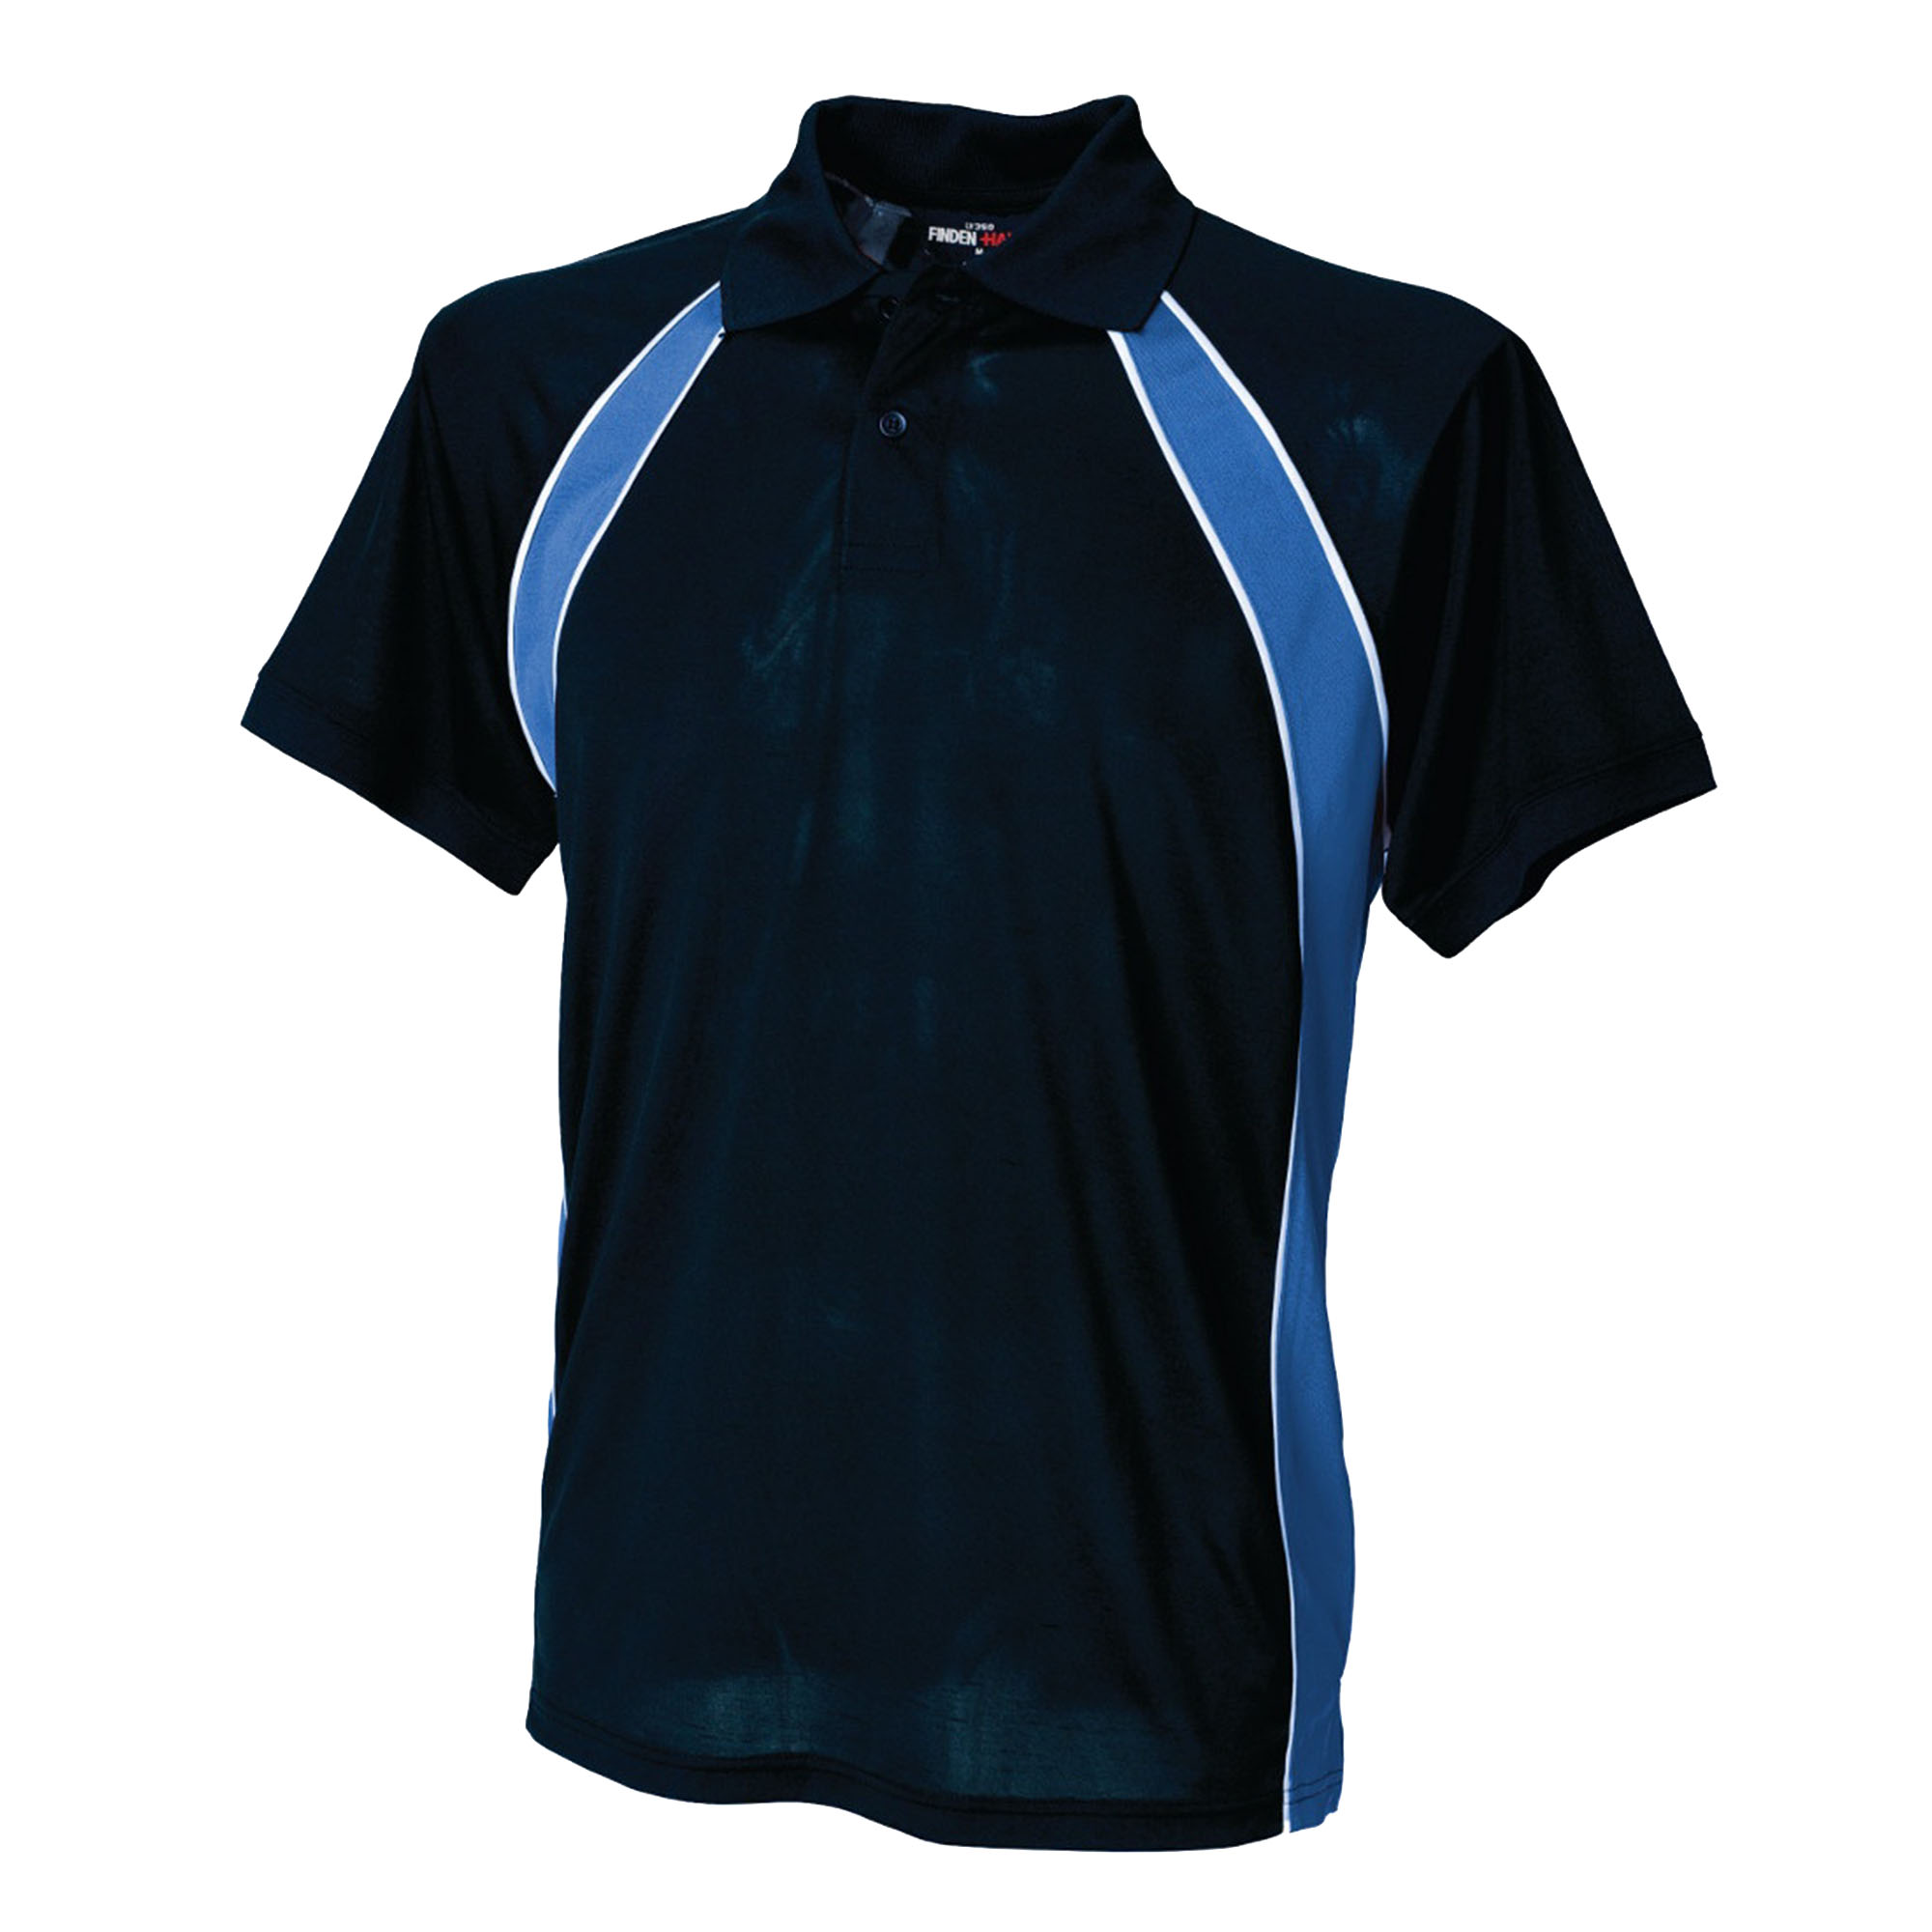 Finden & Hales Mens Jersey Team Sports Polo T-Shirt (XL) (Navy/Royal/White)